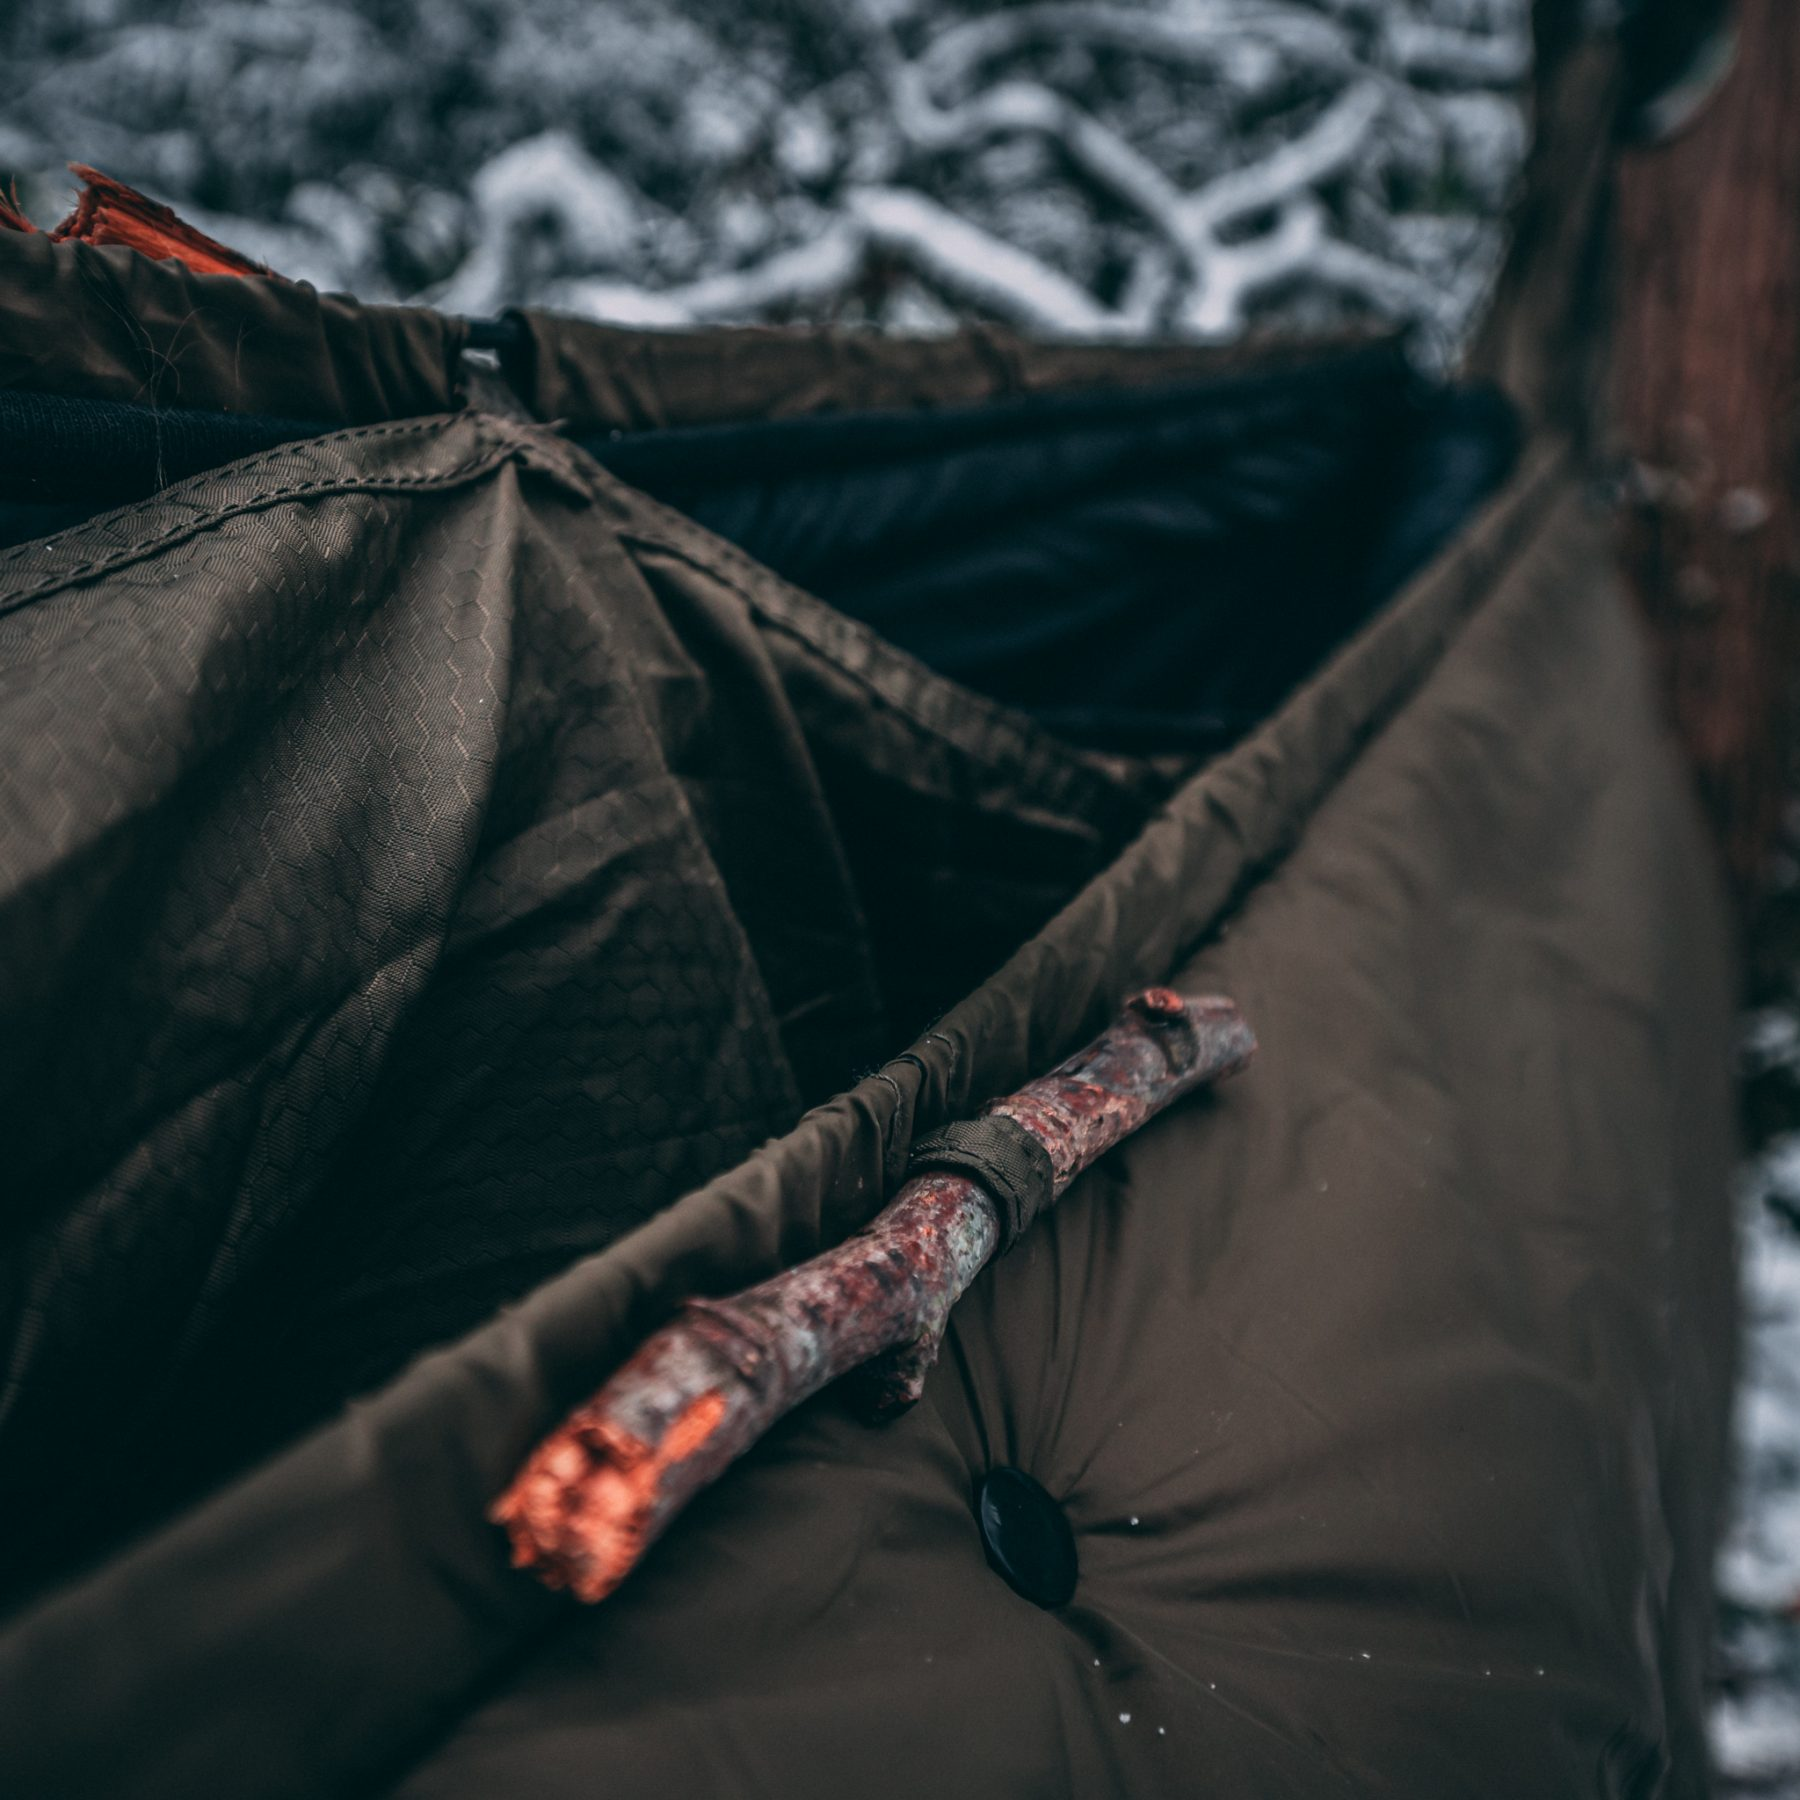 Winter Camping – OneWind Hammock & Underquilt Setup & Review